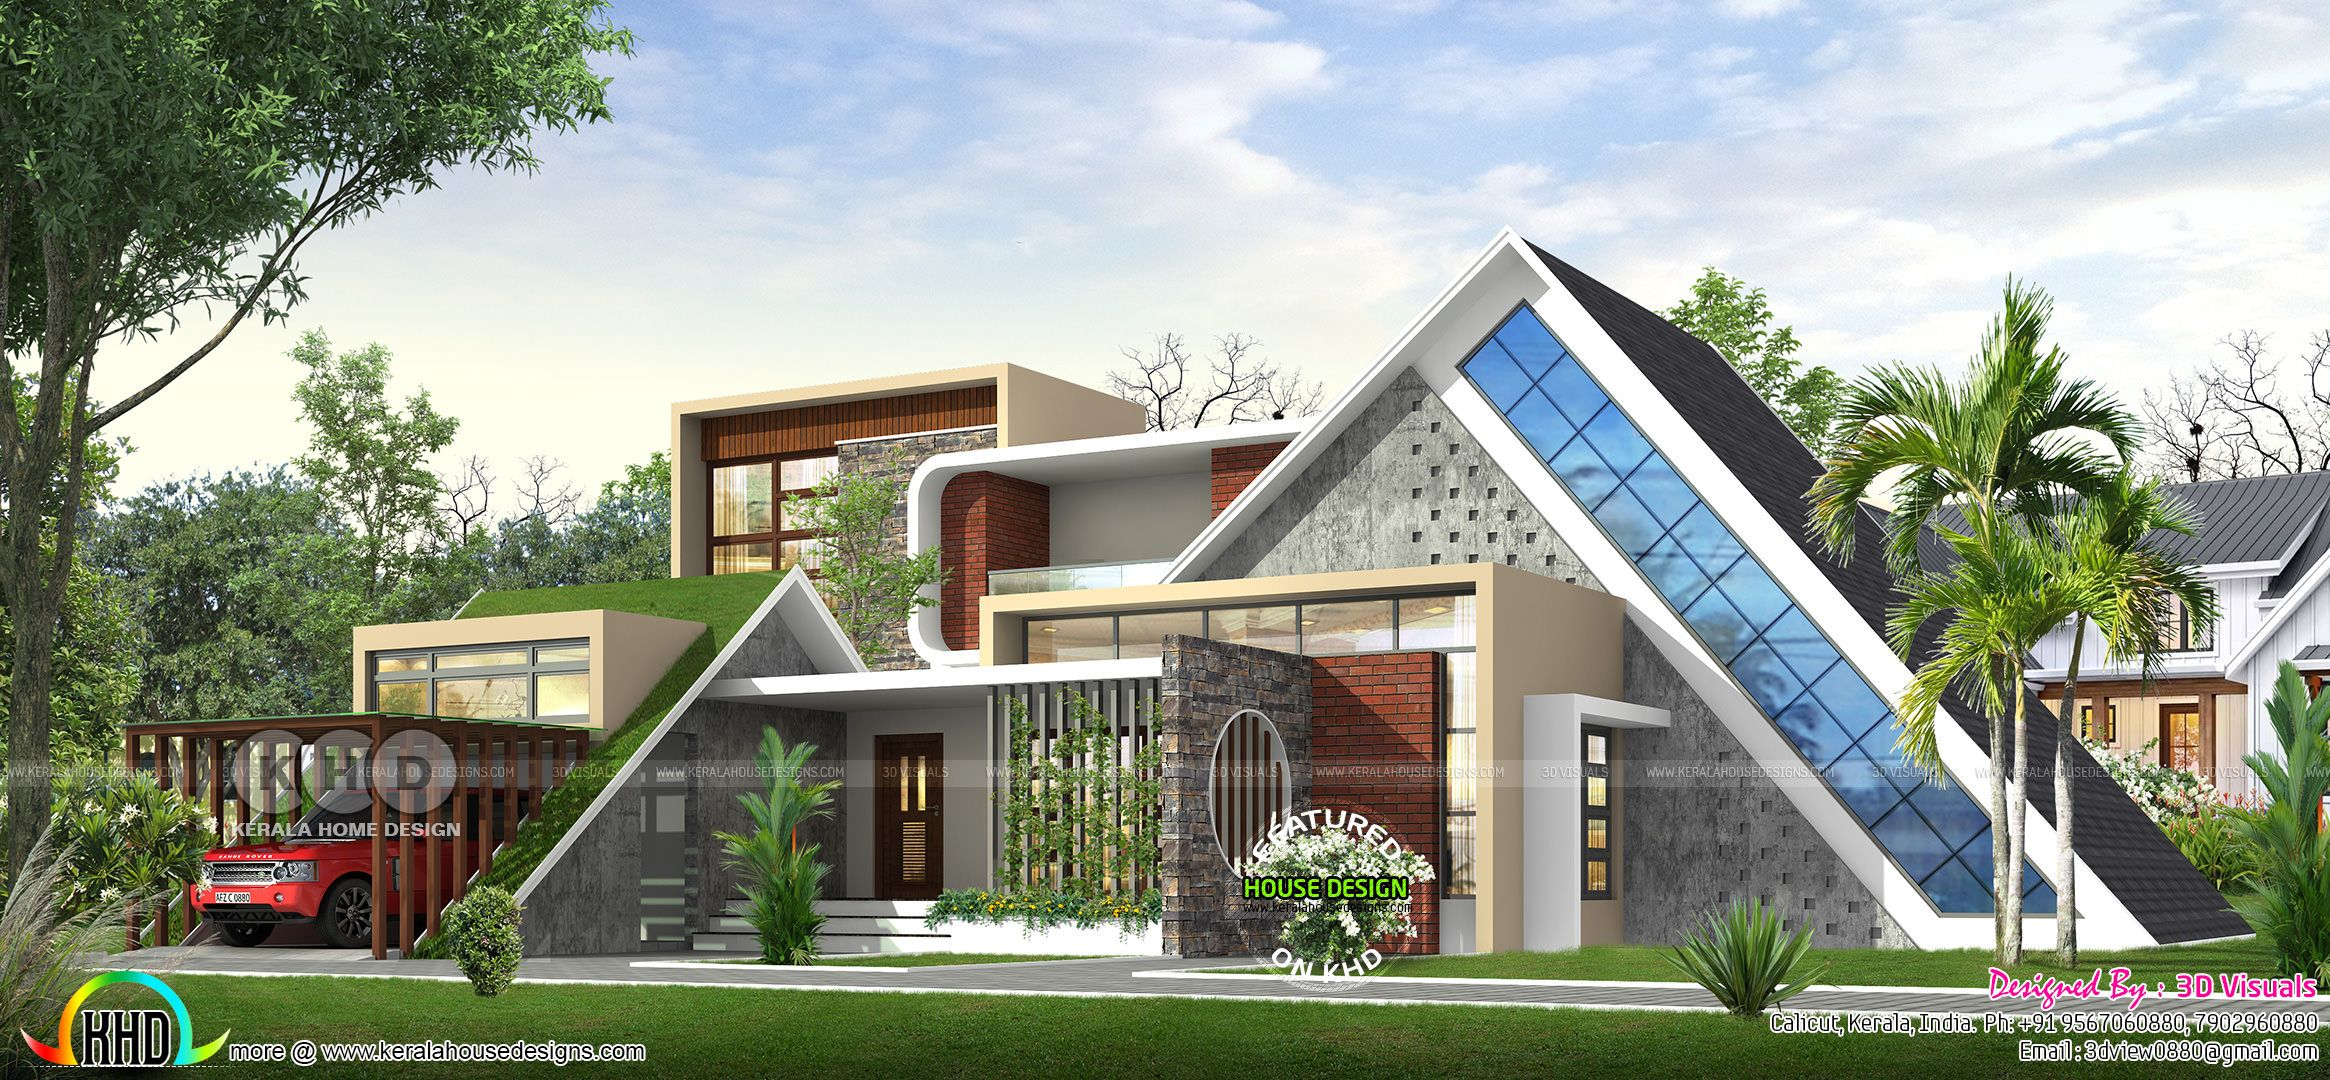 Variety design 4 bedroom ultra modern house Duplex house